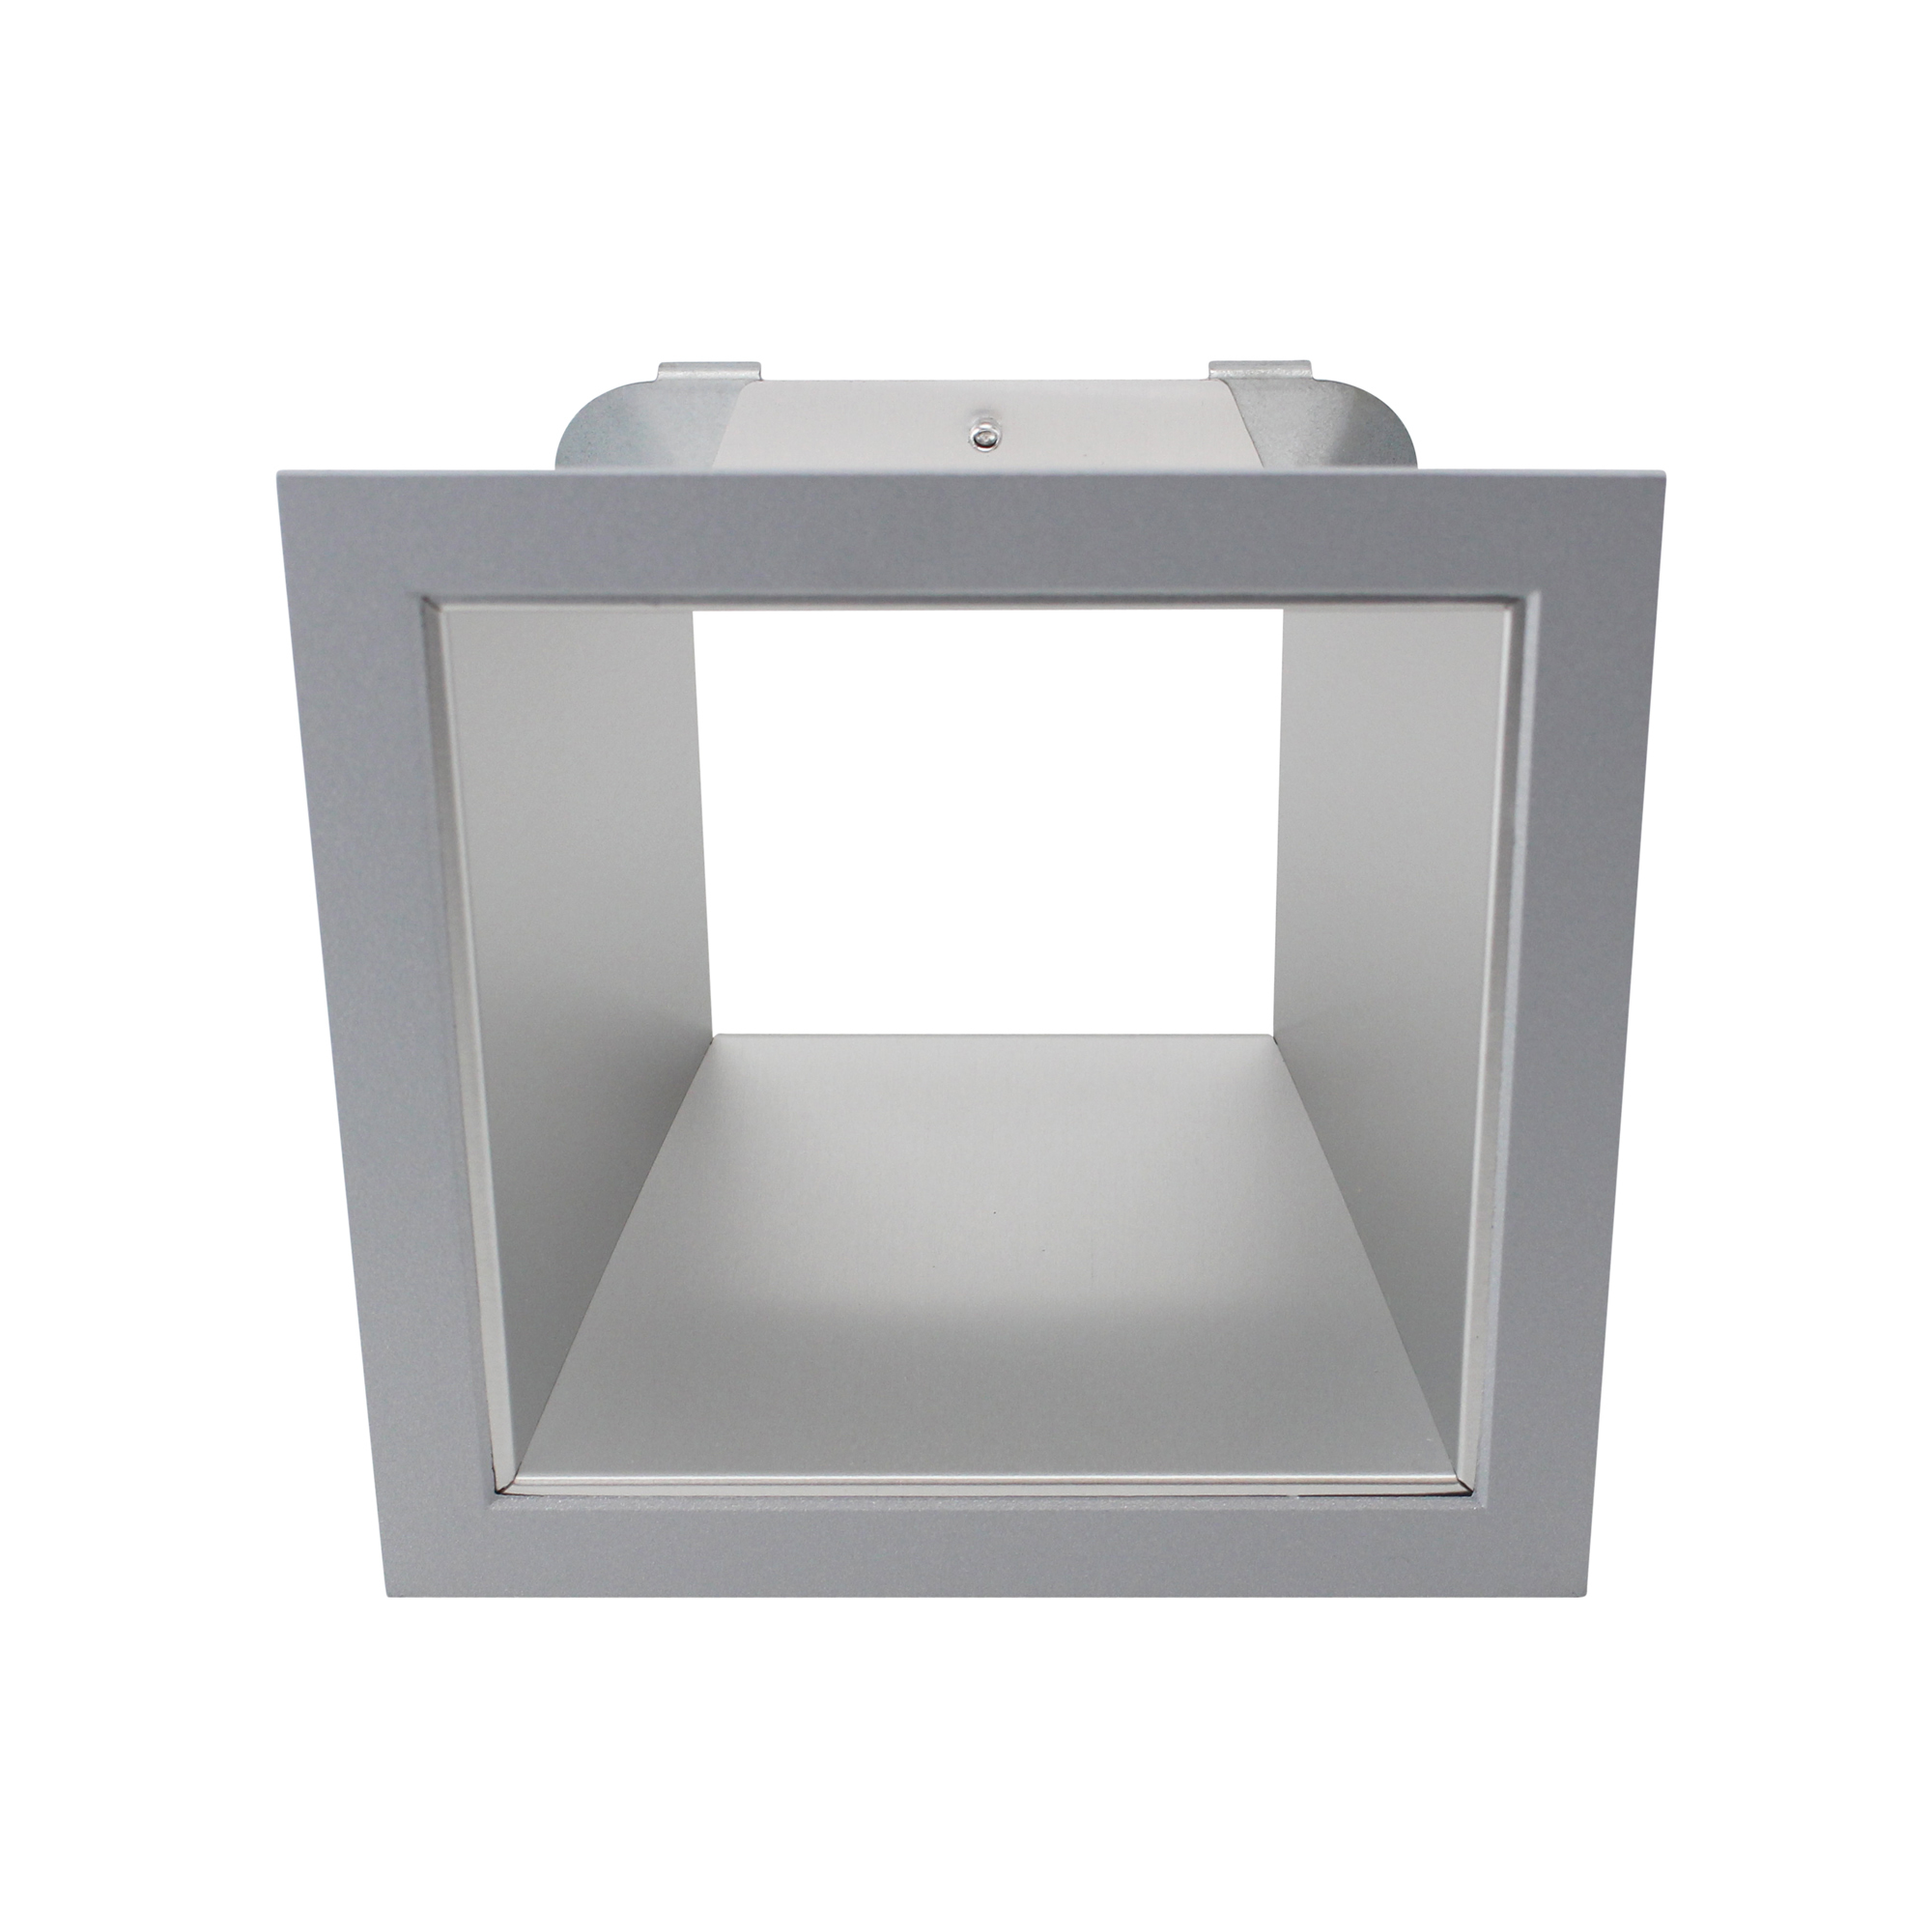 Focal Point Architectural Products Inc L44-Sq-Dn-Cd-Ts Id...